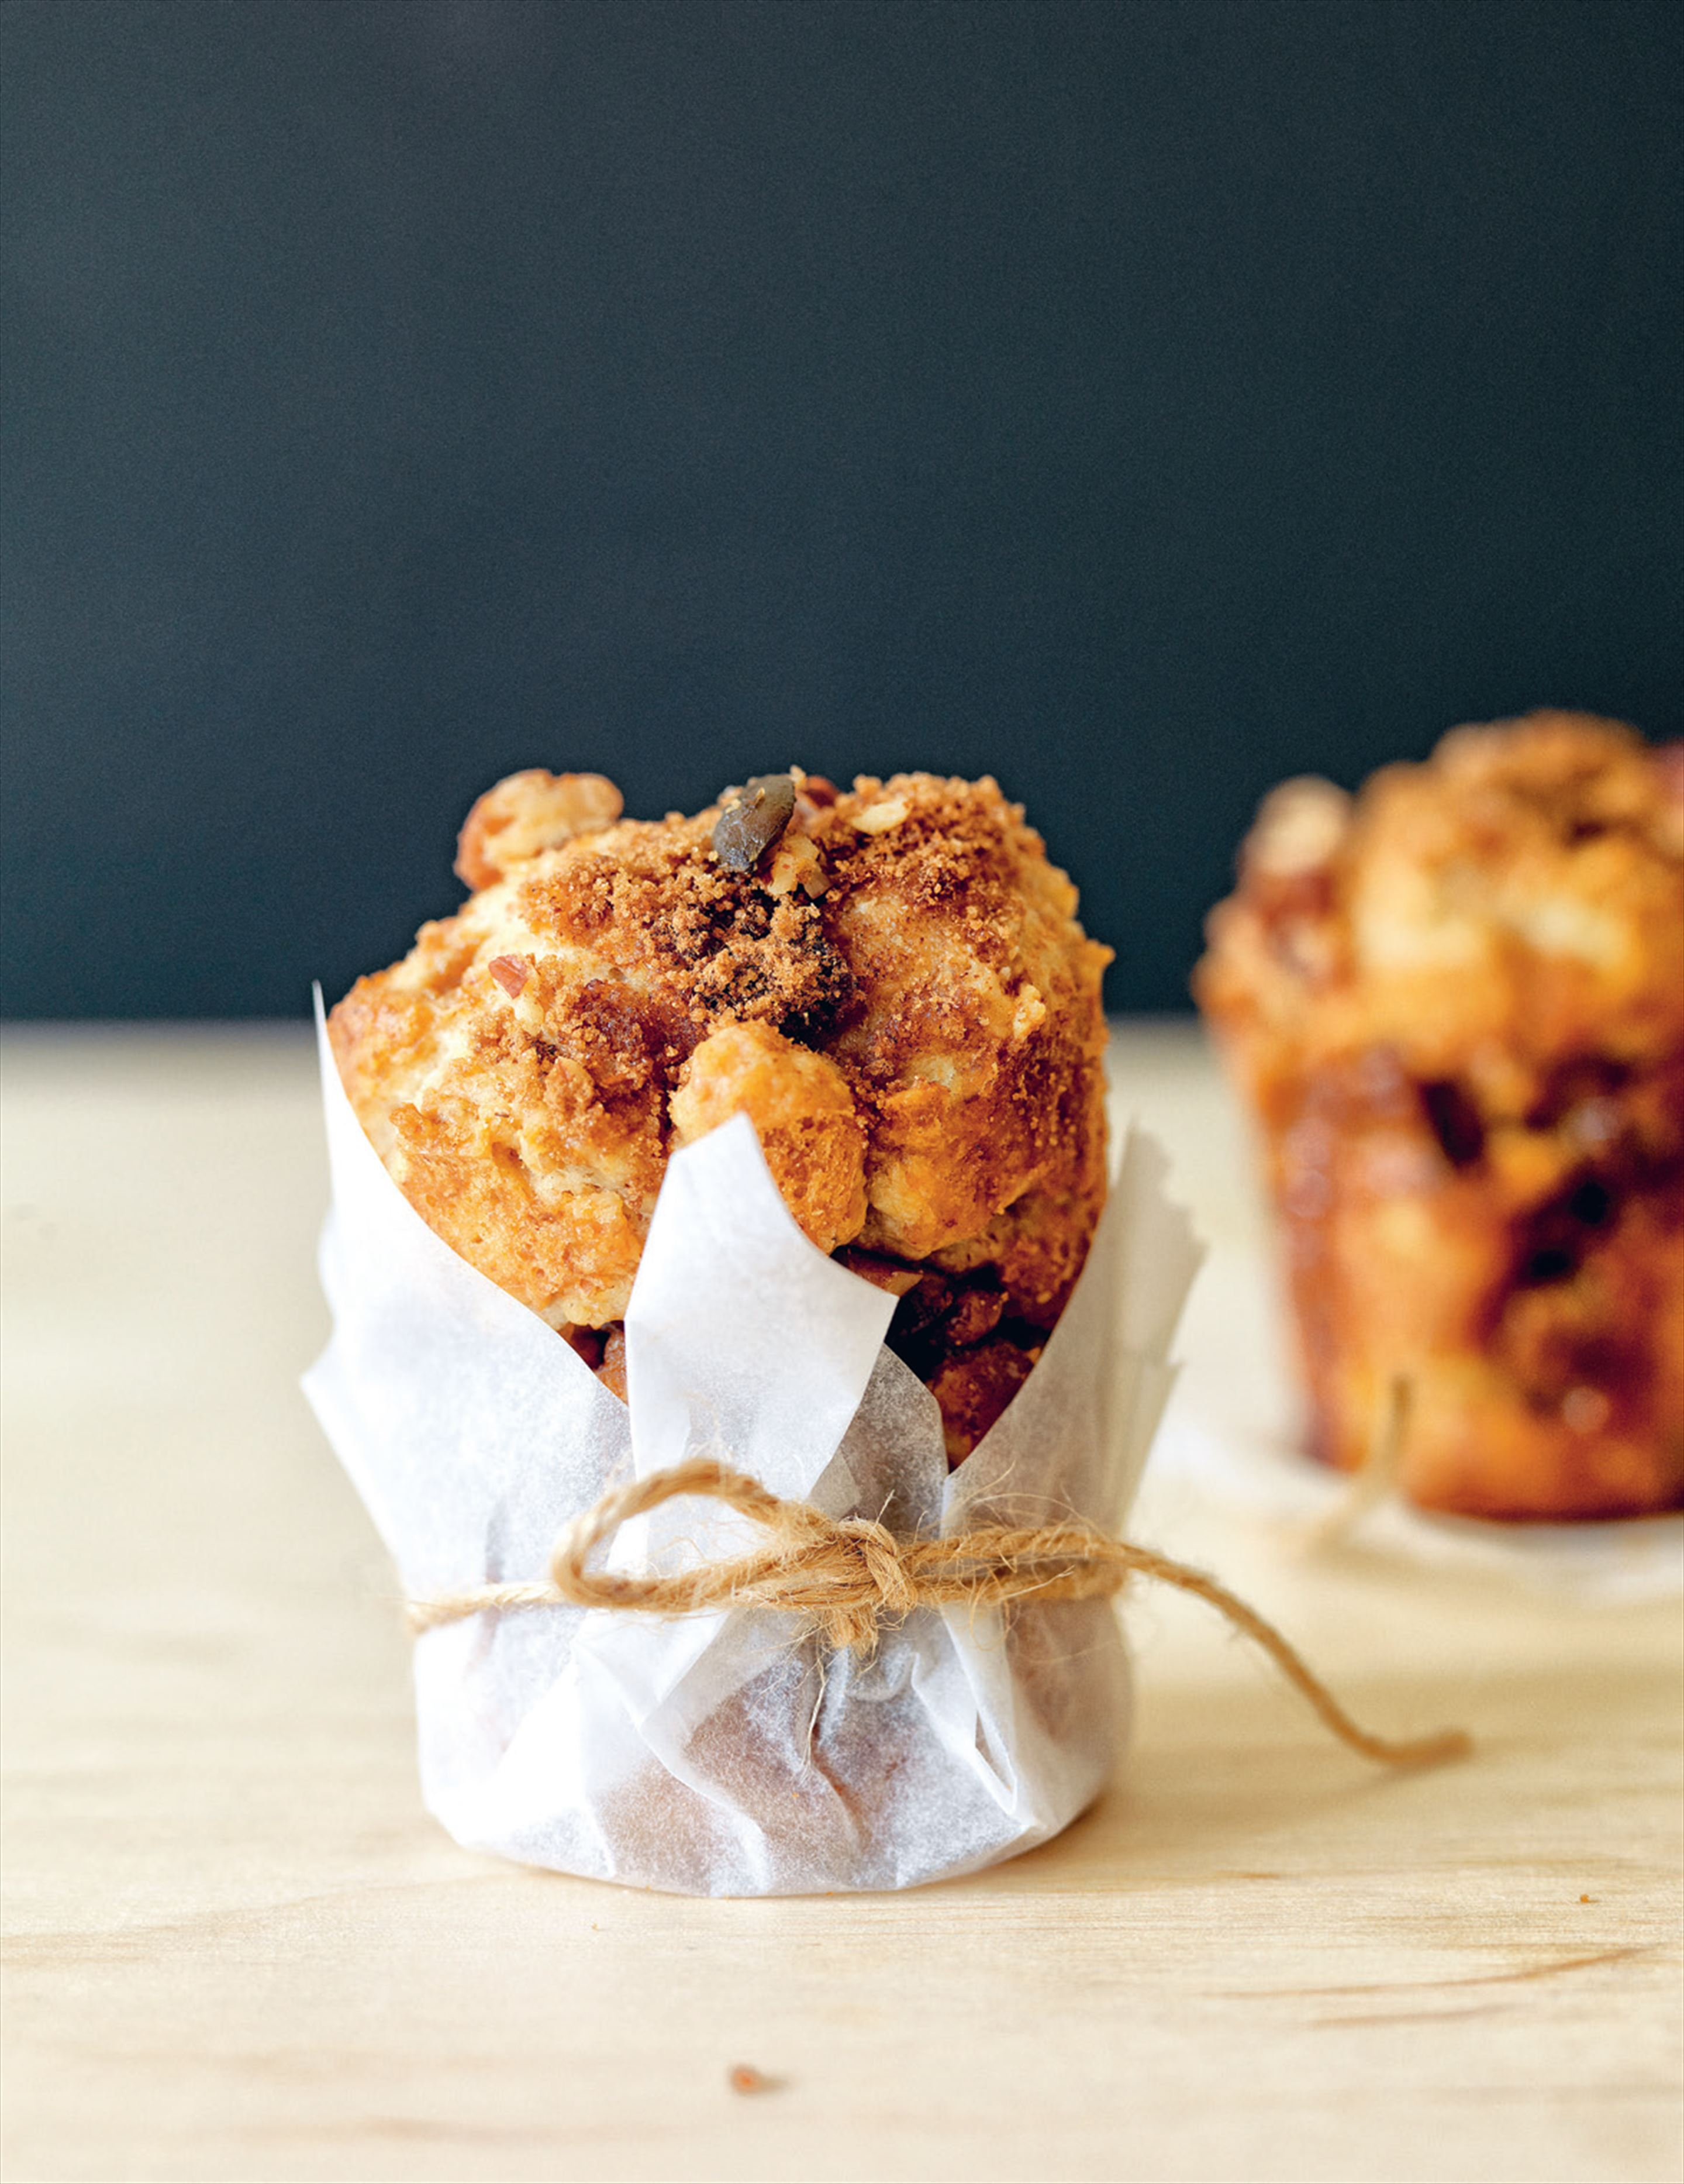 Apple, sour cream & cinnamon crunch muffins